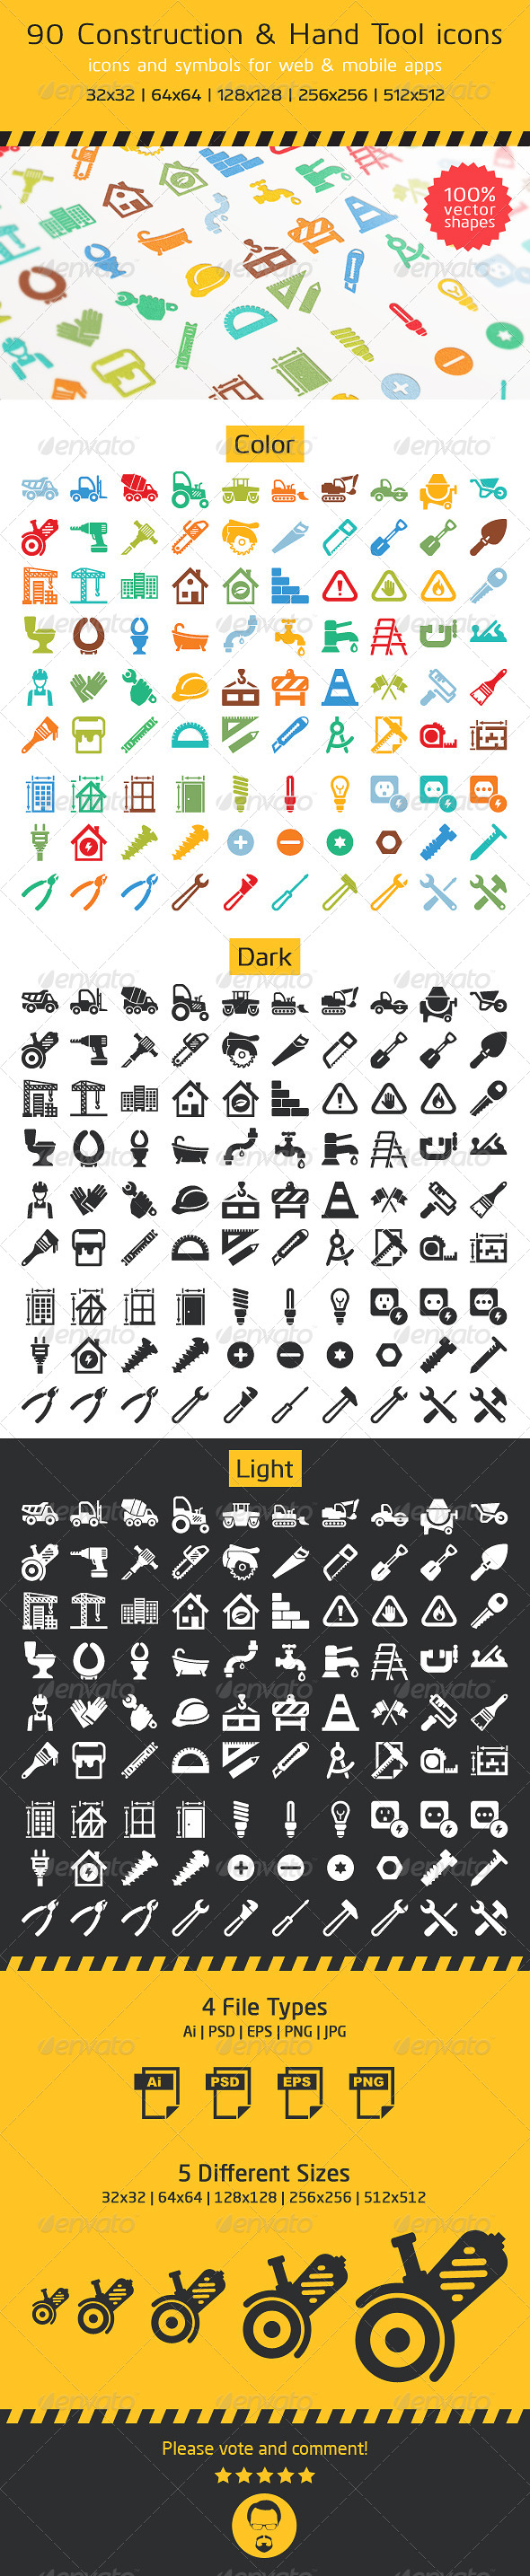 90 Construction and Hand Tool Icons by ottoson